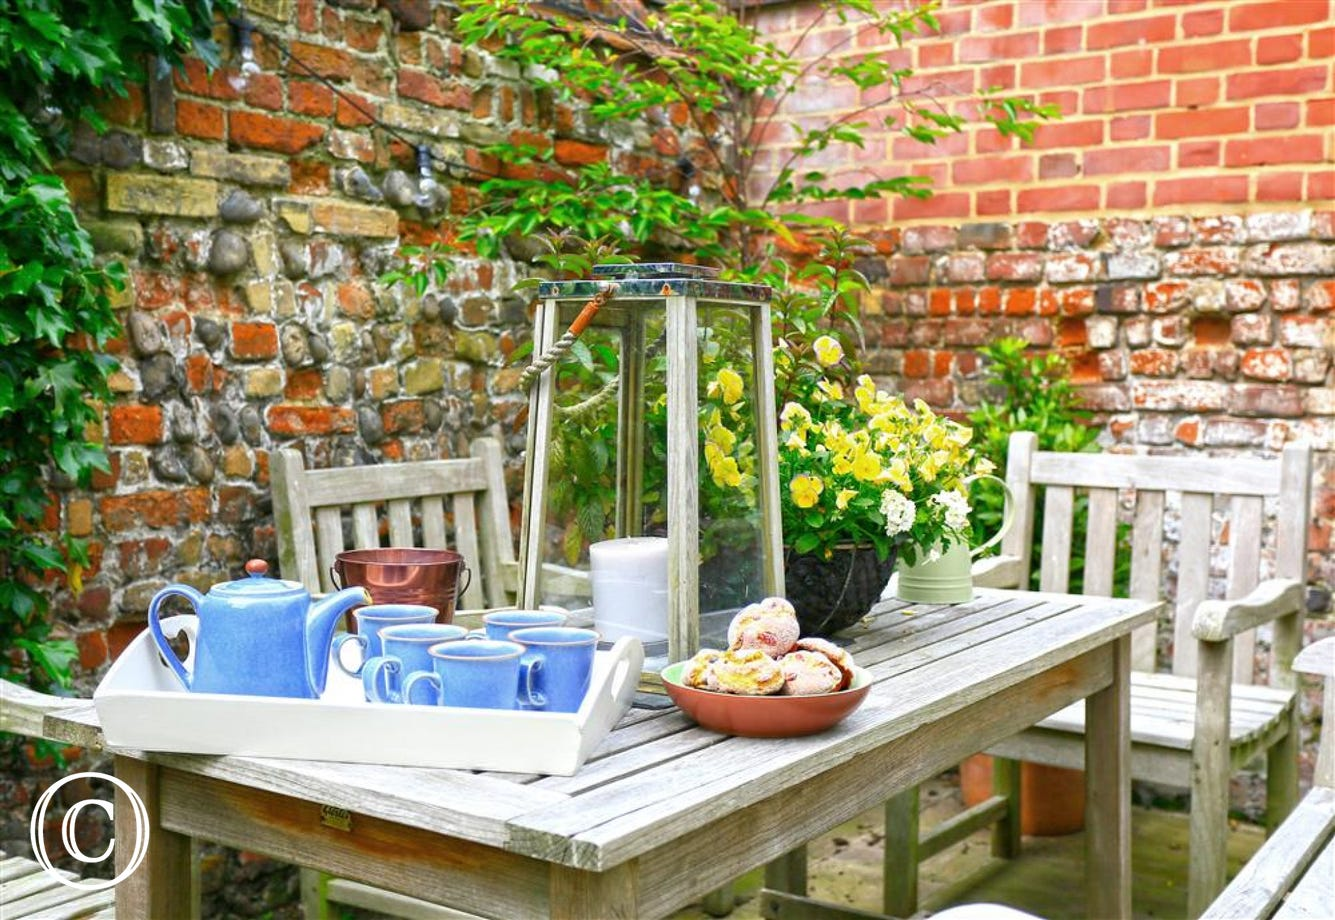 Enjoy a few alfresco meals or a nice cup of tea in the midday sun that slowly makes it way over this pretty courtyard garden.